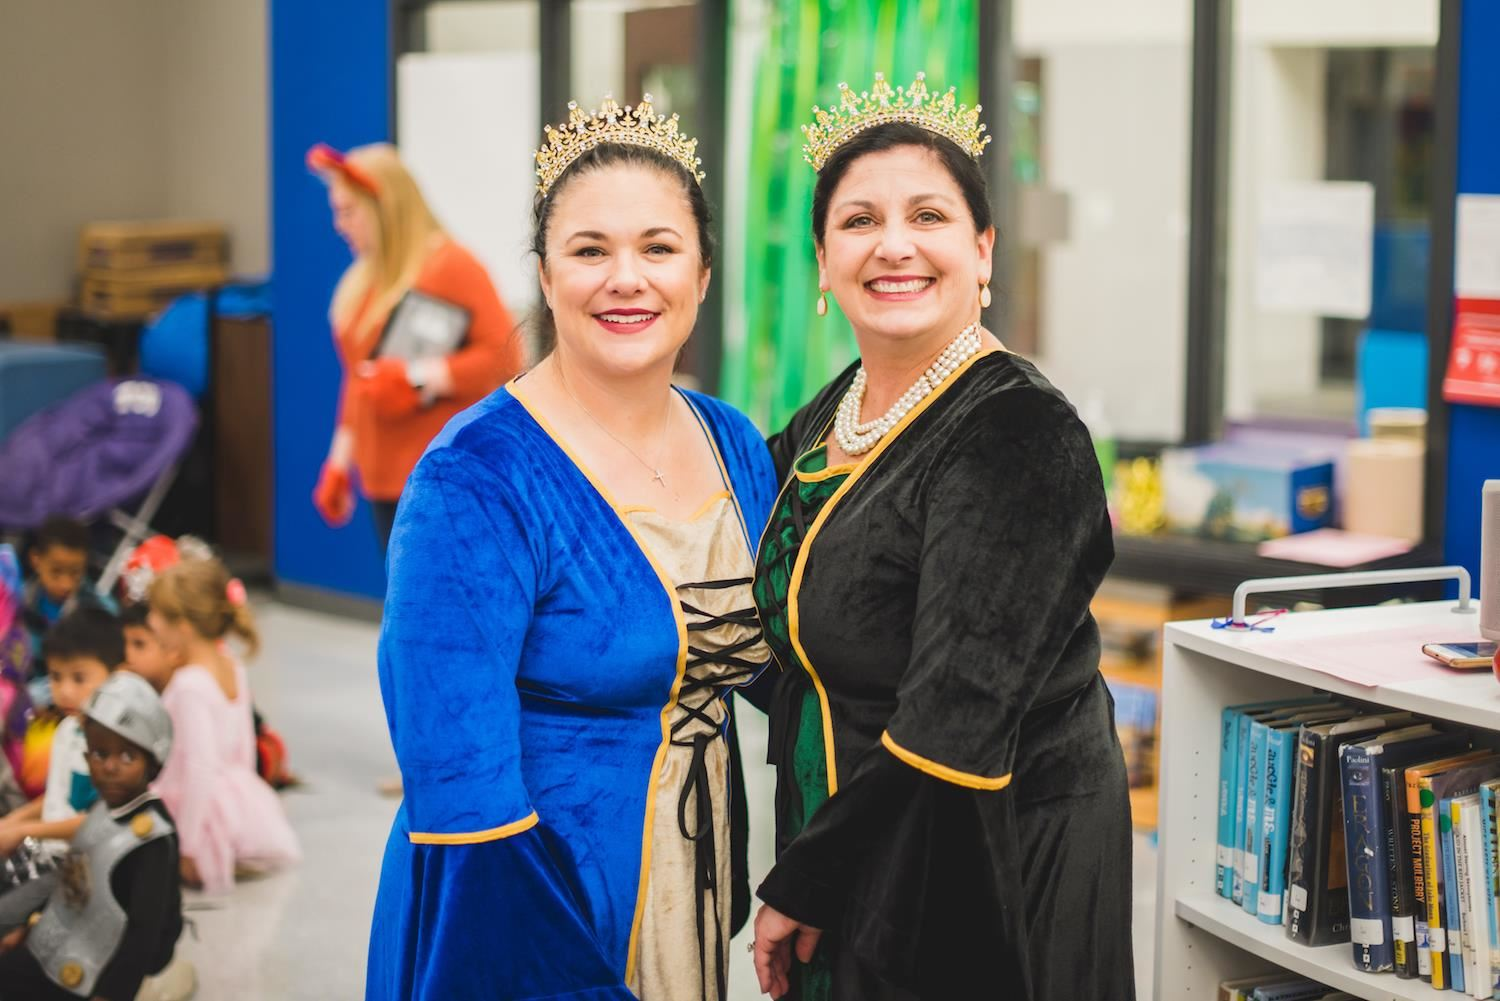 Polser principal and assistant principal smile in queen costumes